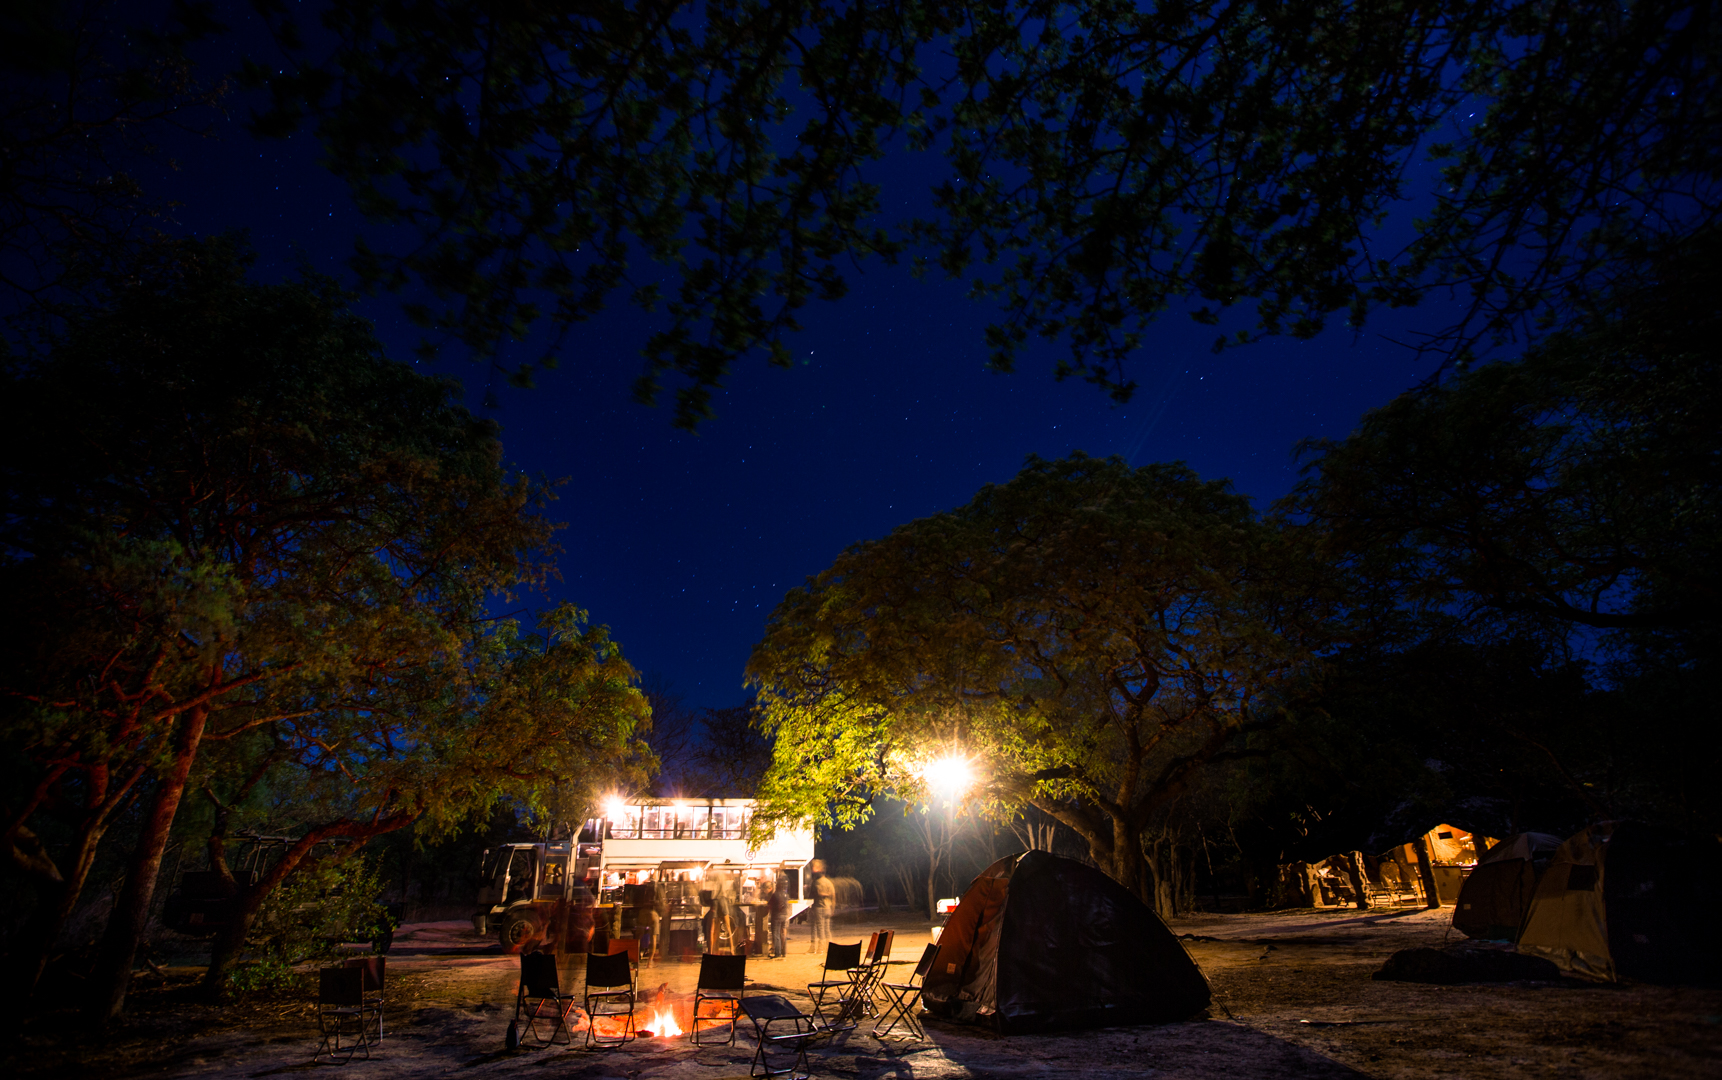 Camping under the stars in Matobo.